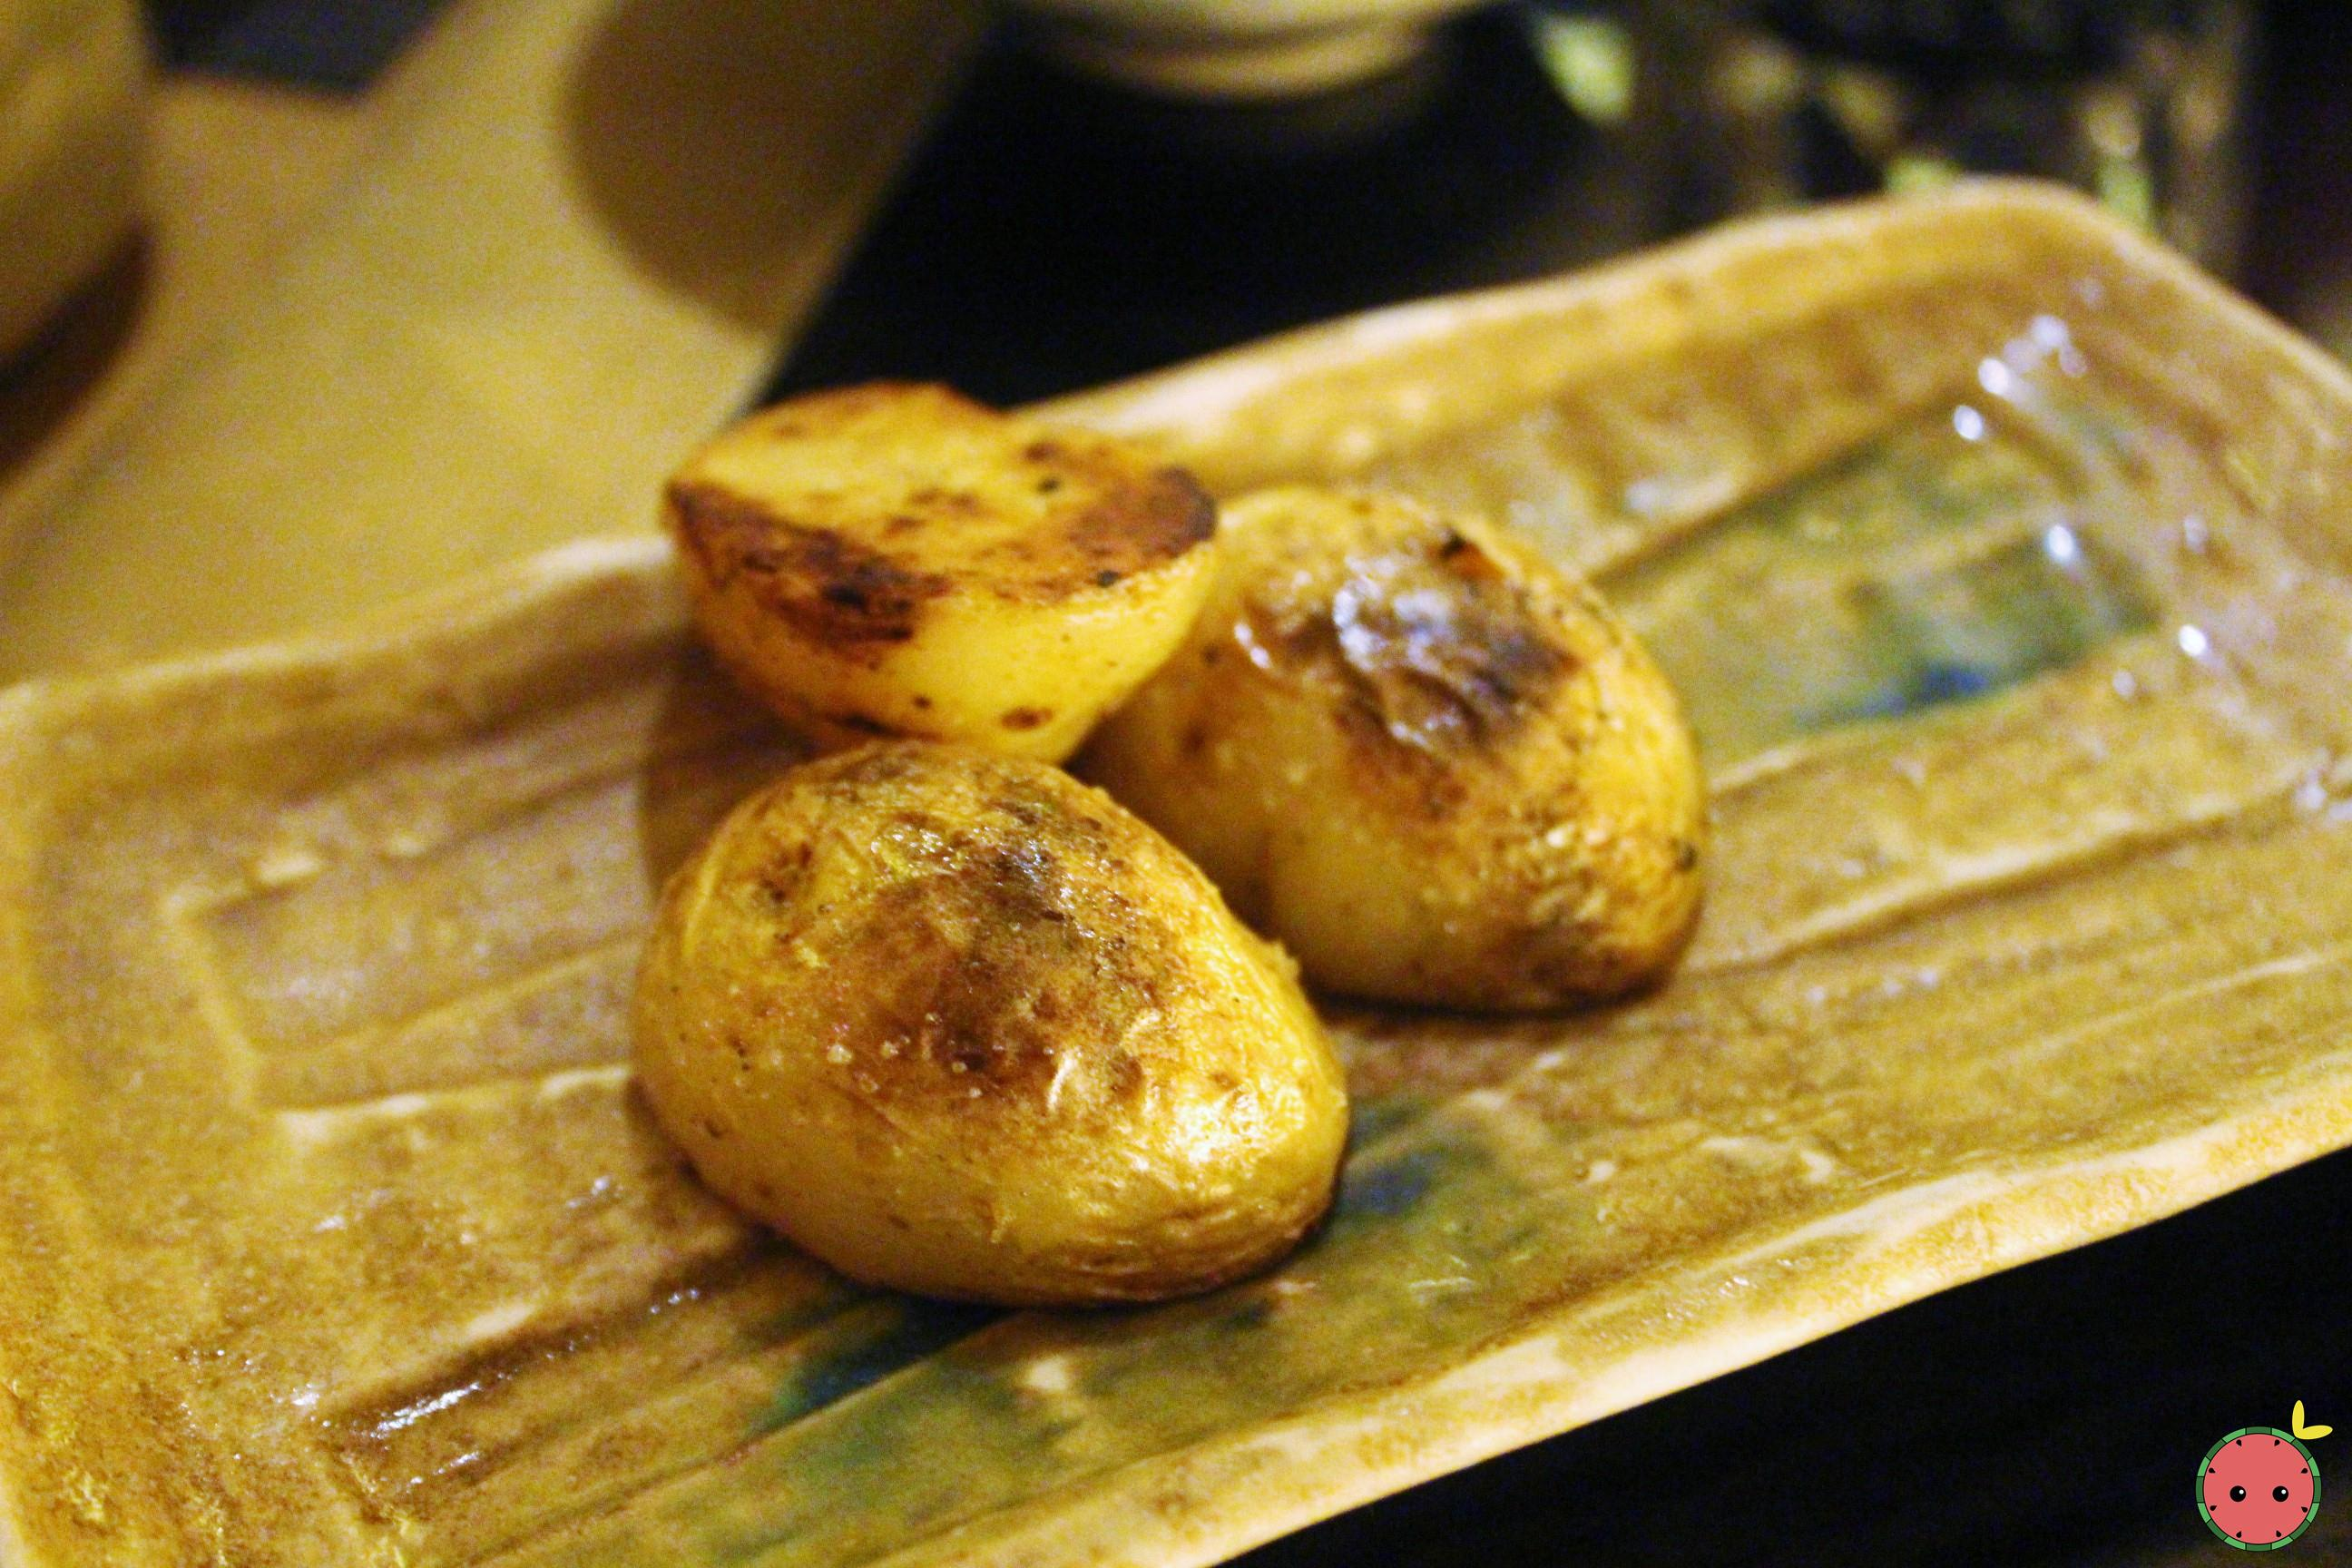 Grilled and buttered potato